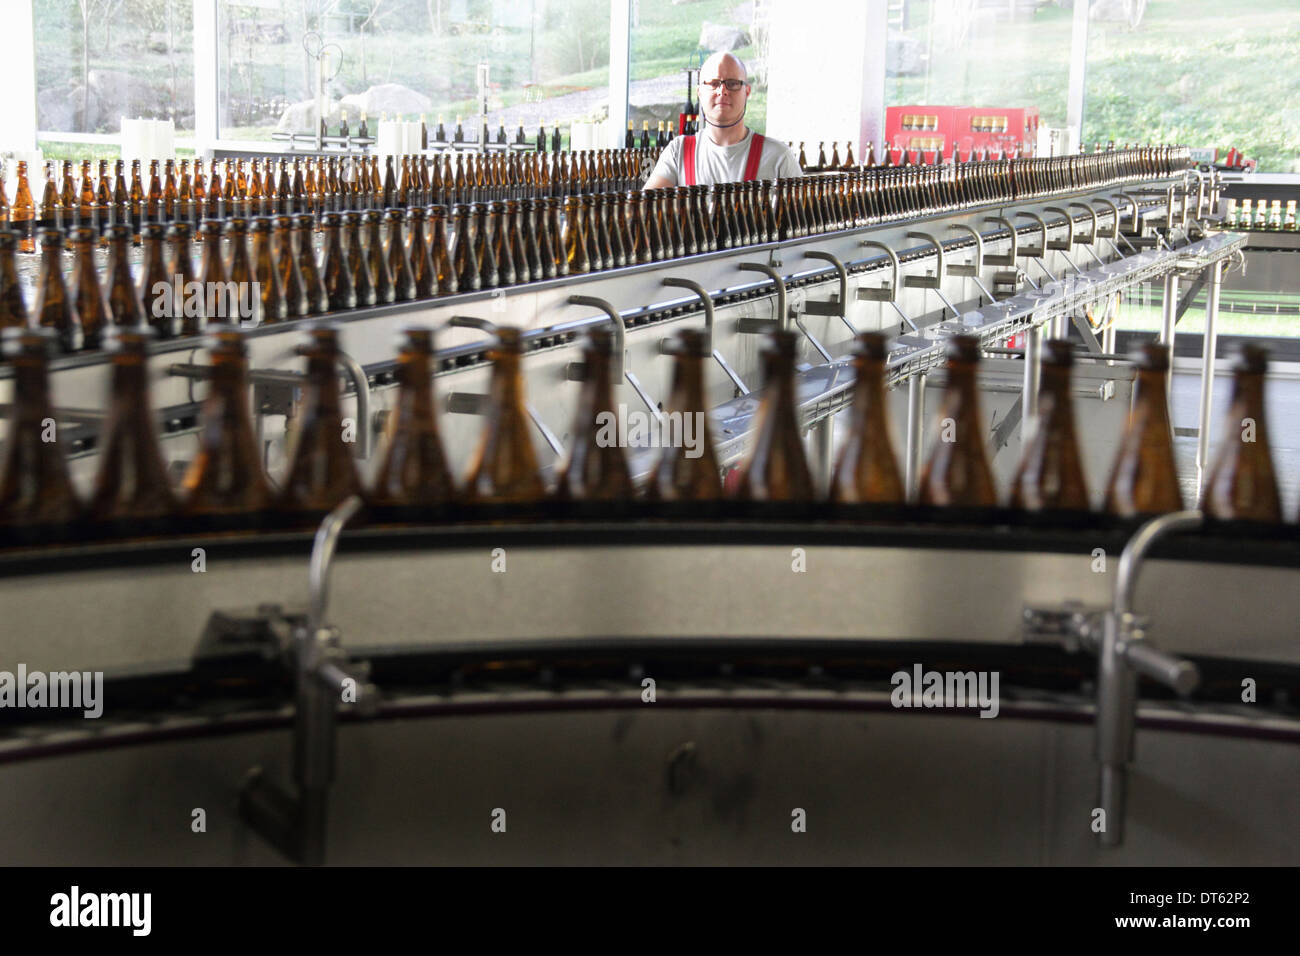 Beer bottles on production line in brewery - Stock Image